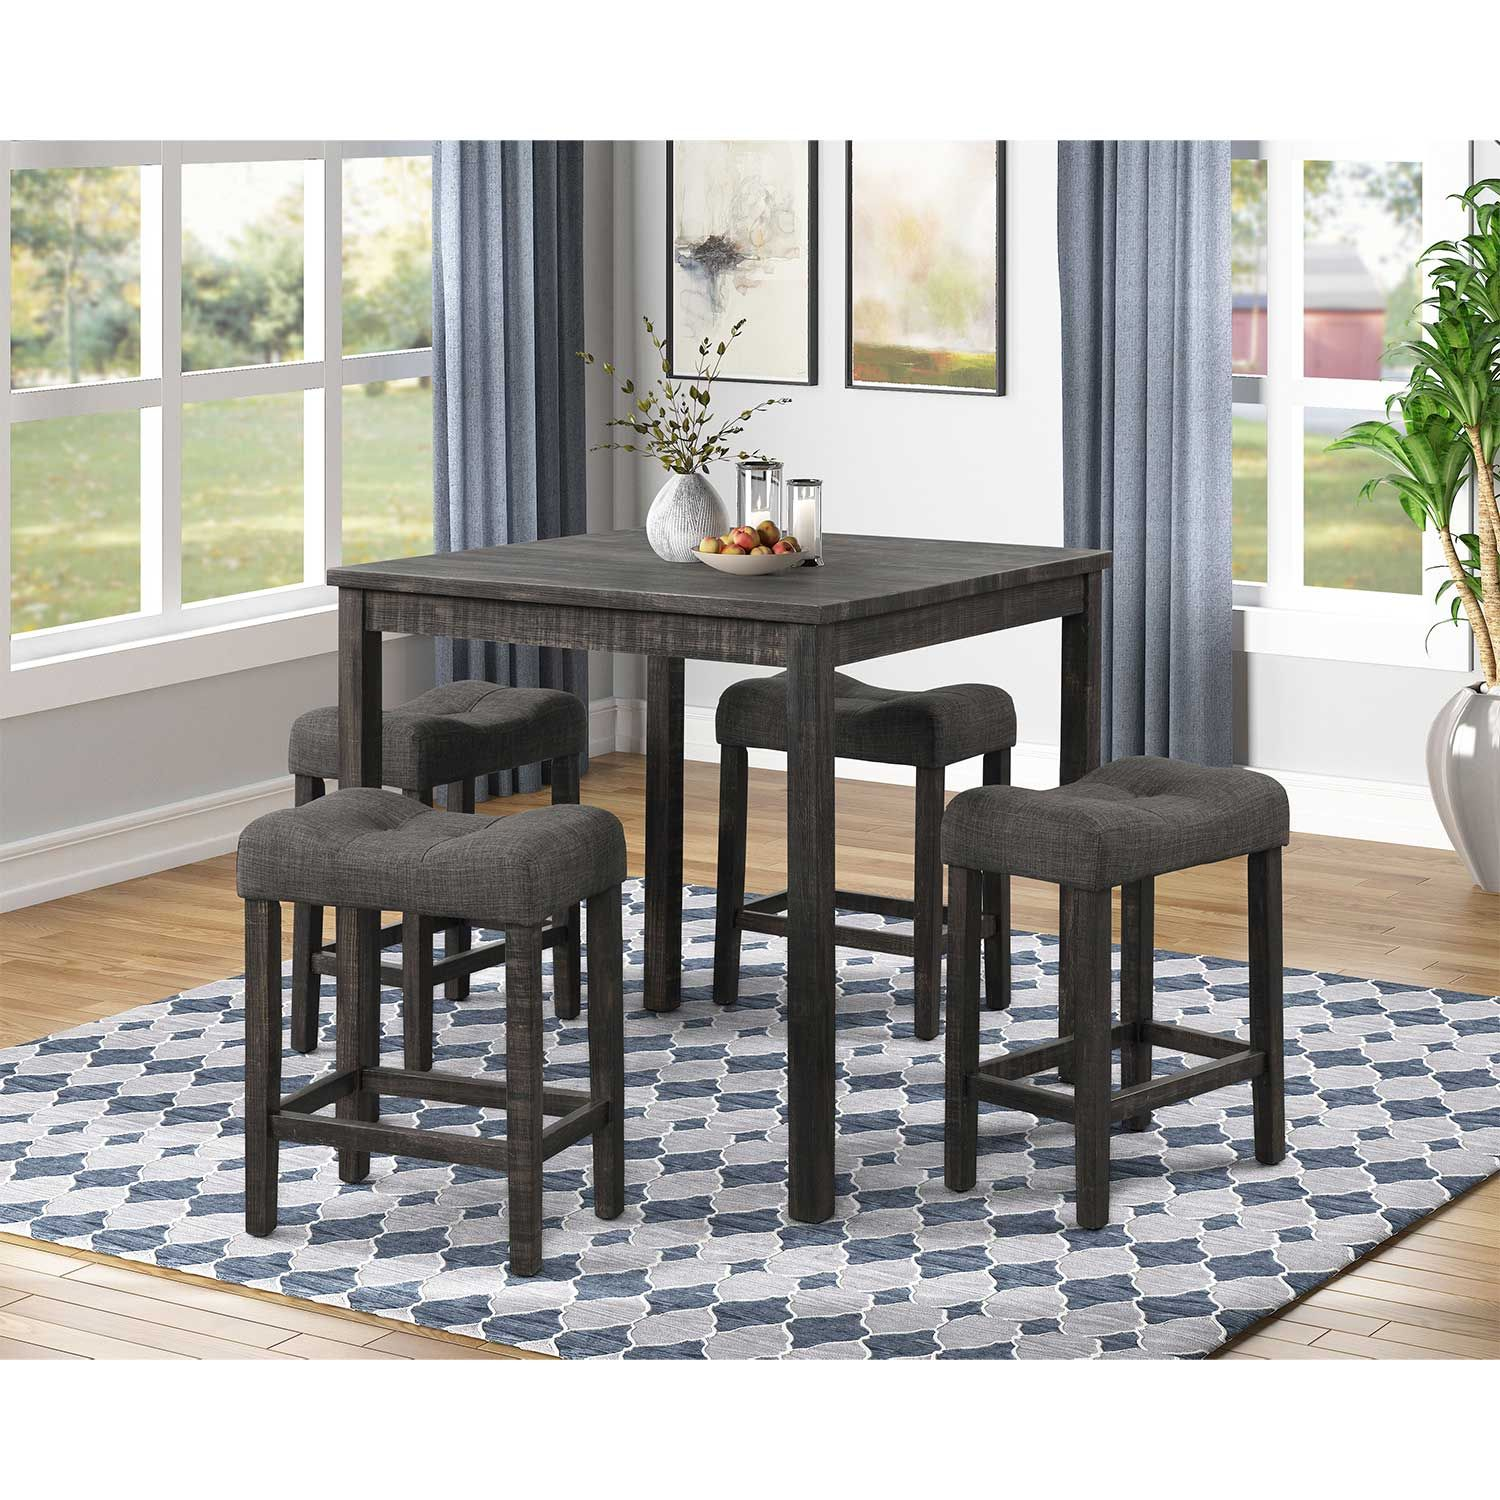 Square Coffee Table With 4 Stools Living Room Furniture Kent Building Supplies